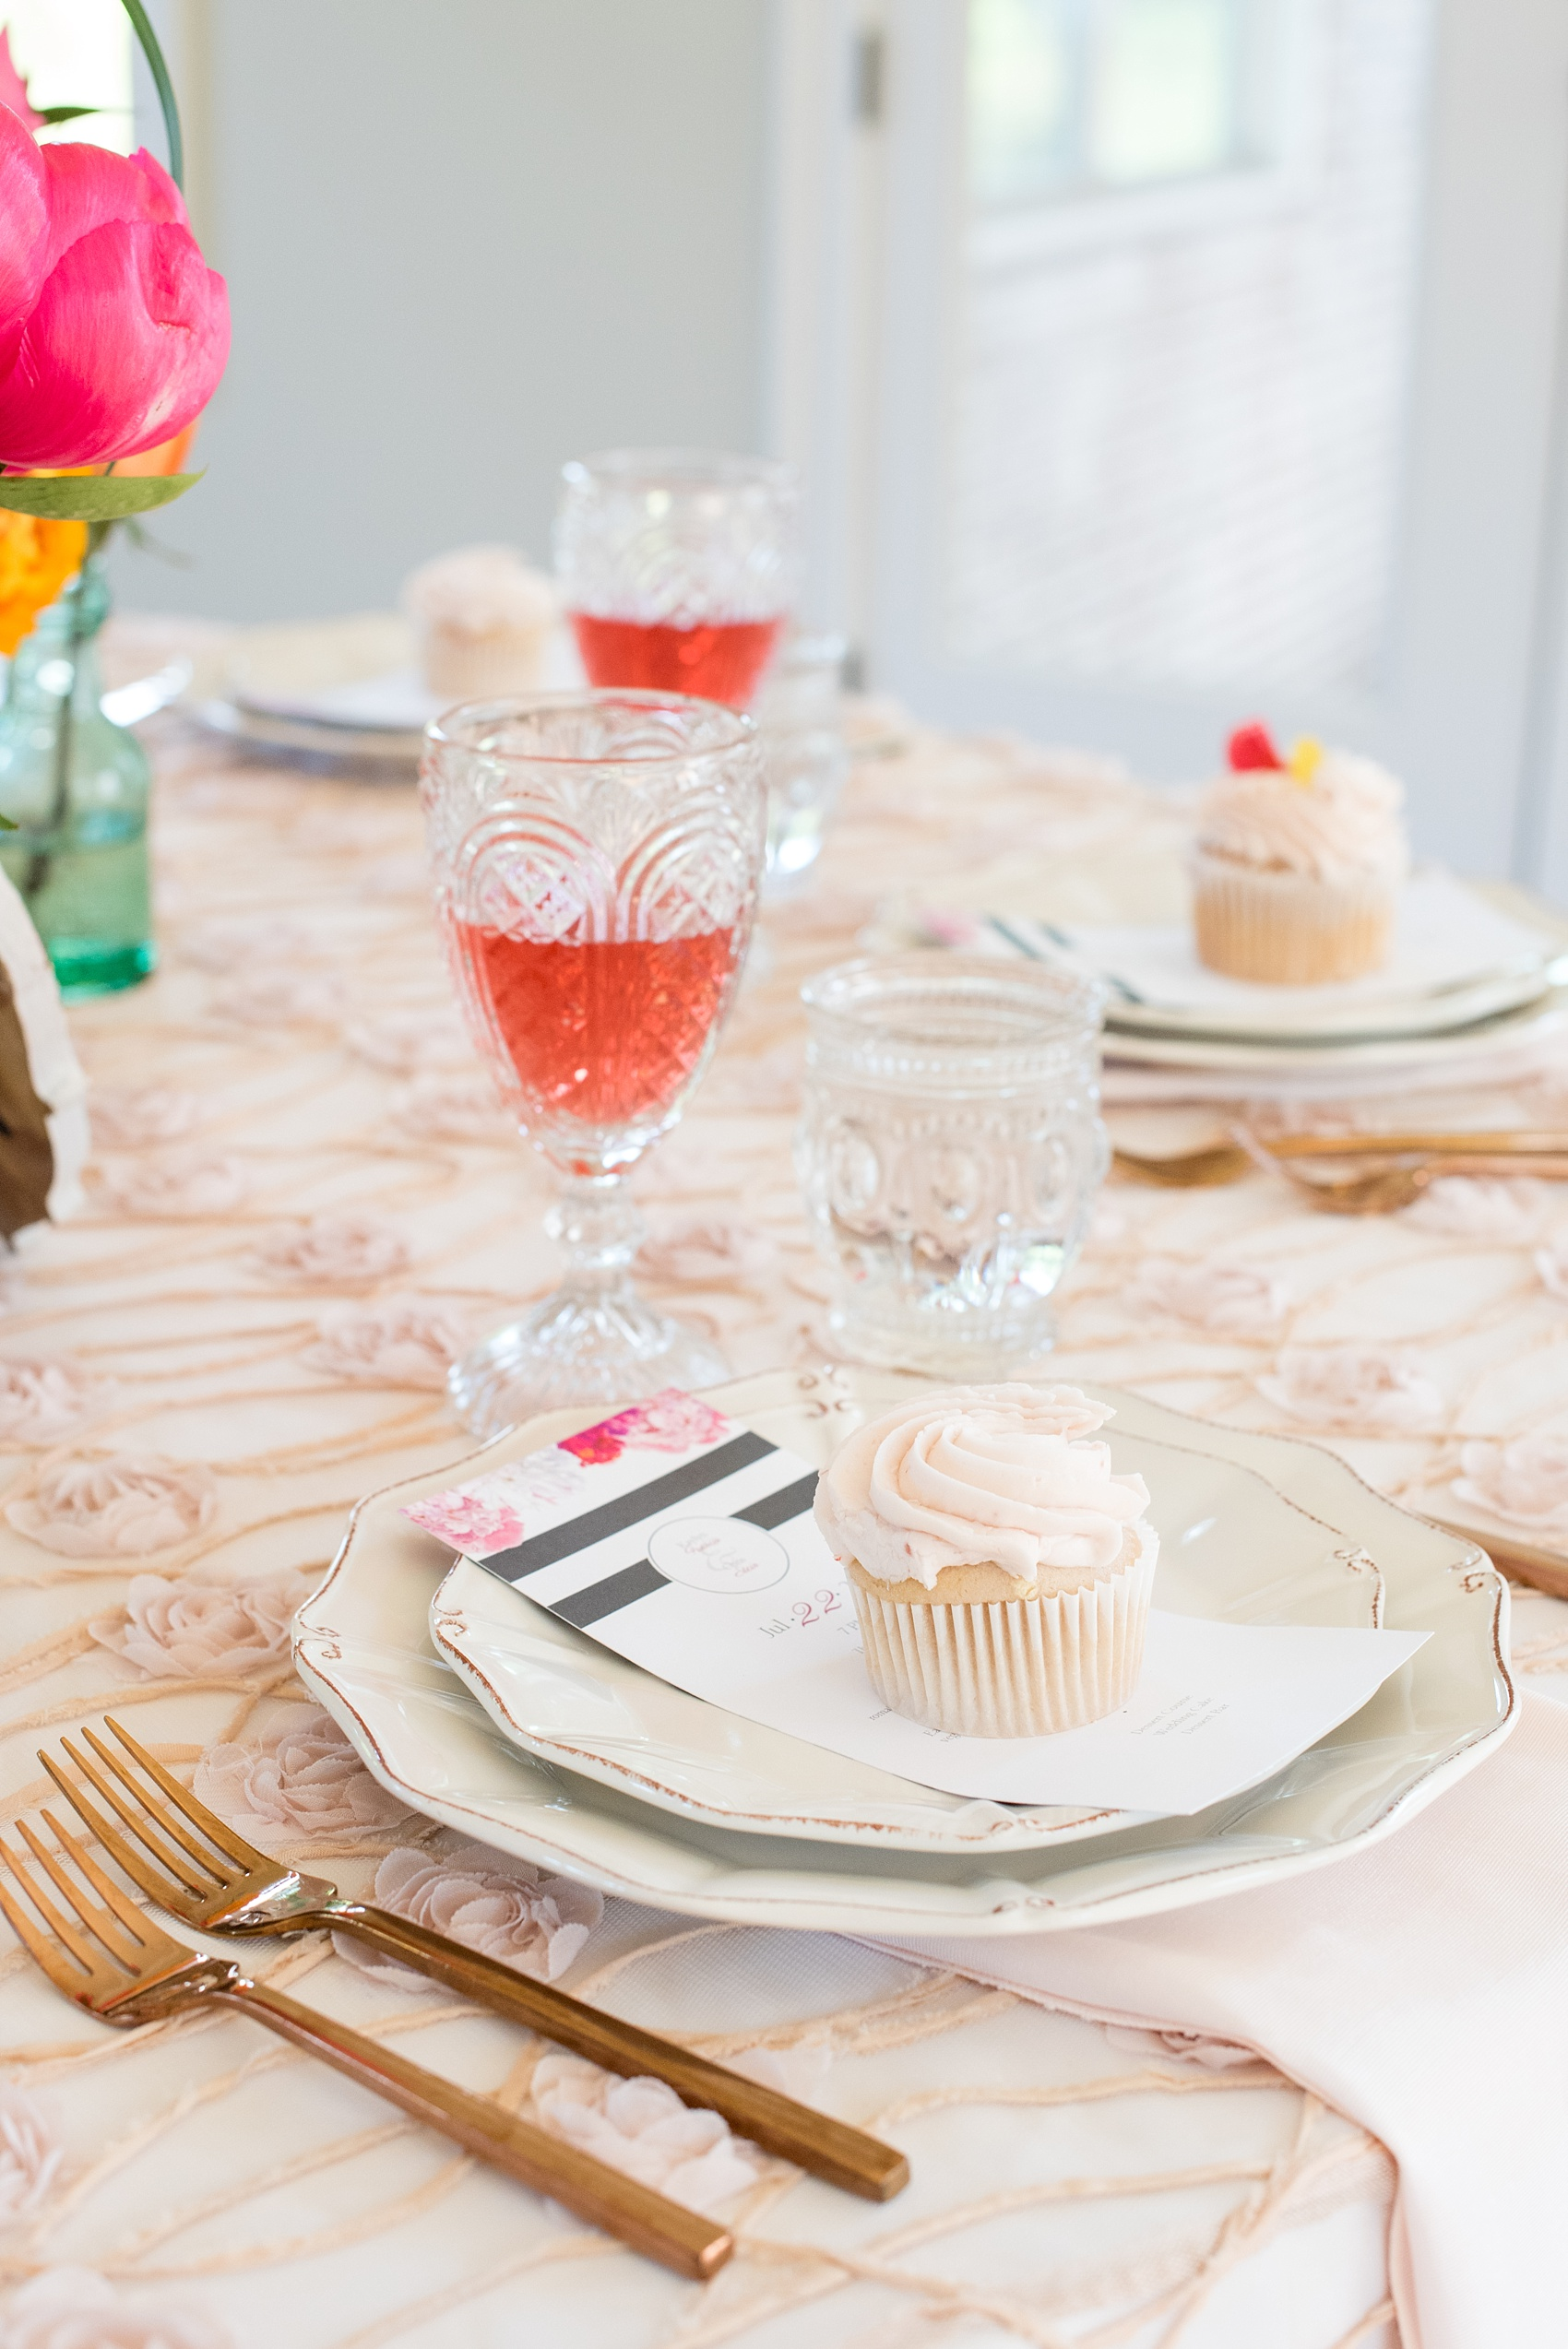 Mikkel Paige Photography wedding photo at The Bradford, NC. Modern pink, black and white table setup. Cupcake placed on top of the plate menu.